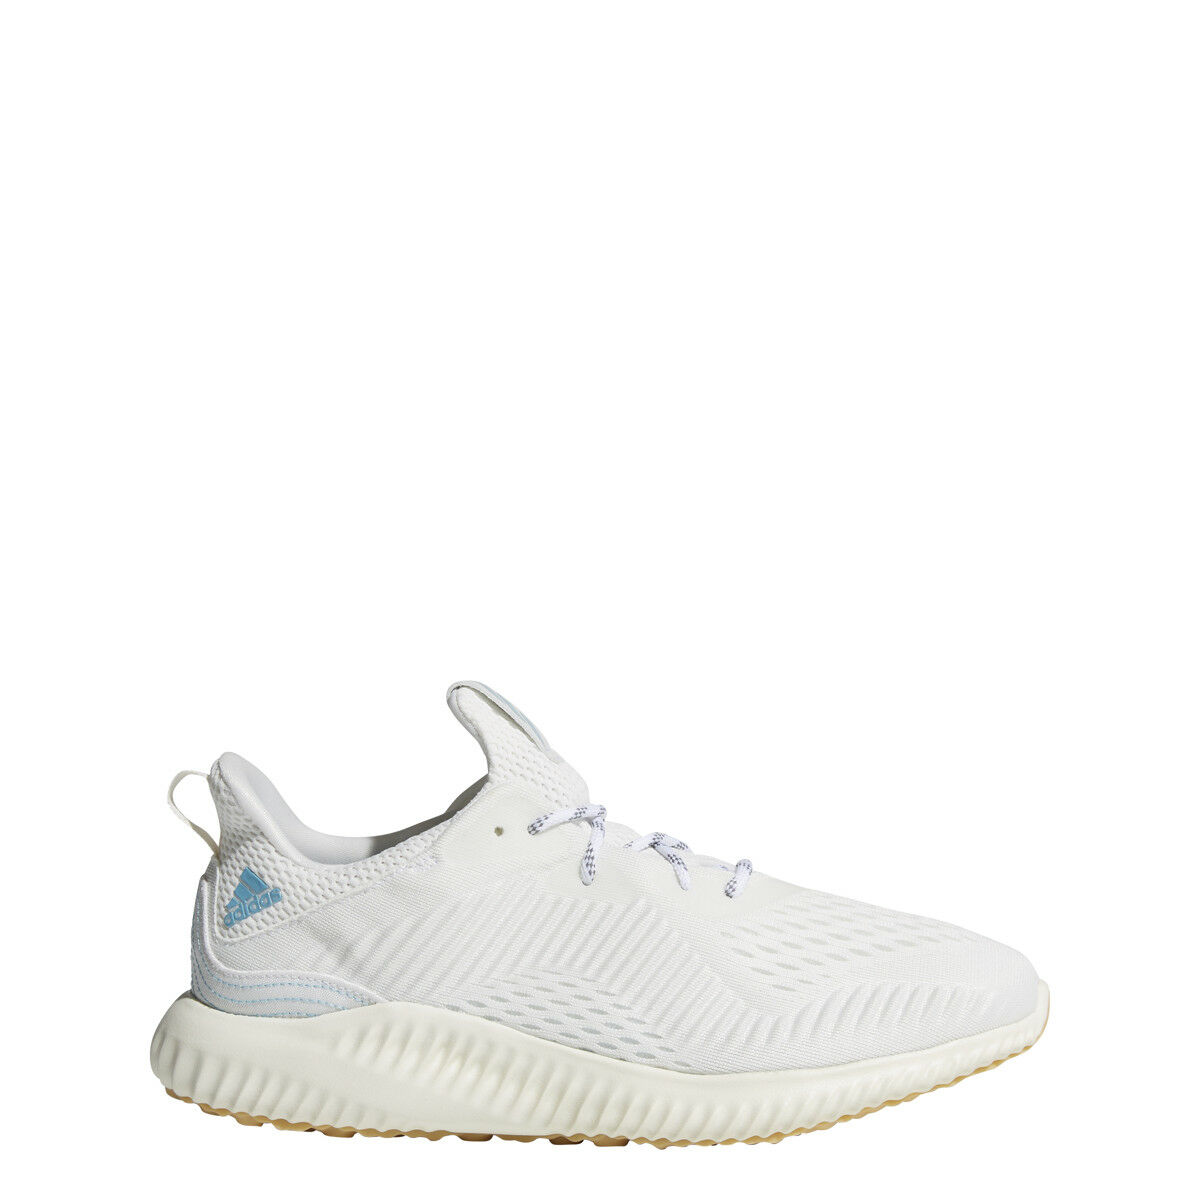 dce7b4af23 Adidas 1 PARLEY WHITE blueE - CQ0784 MENS ALPHABOUNCE ...